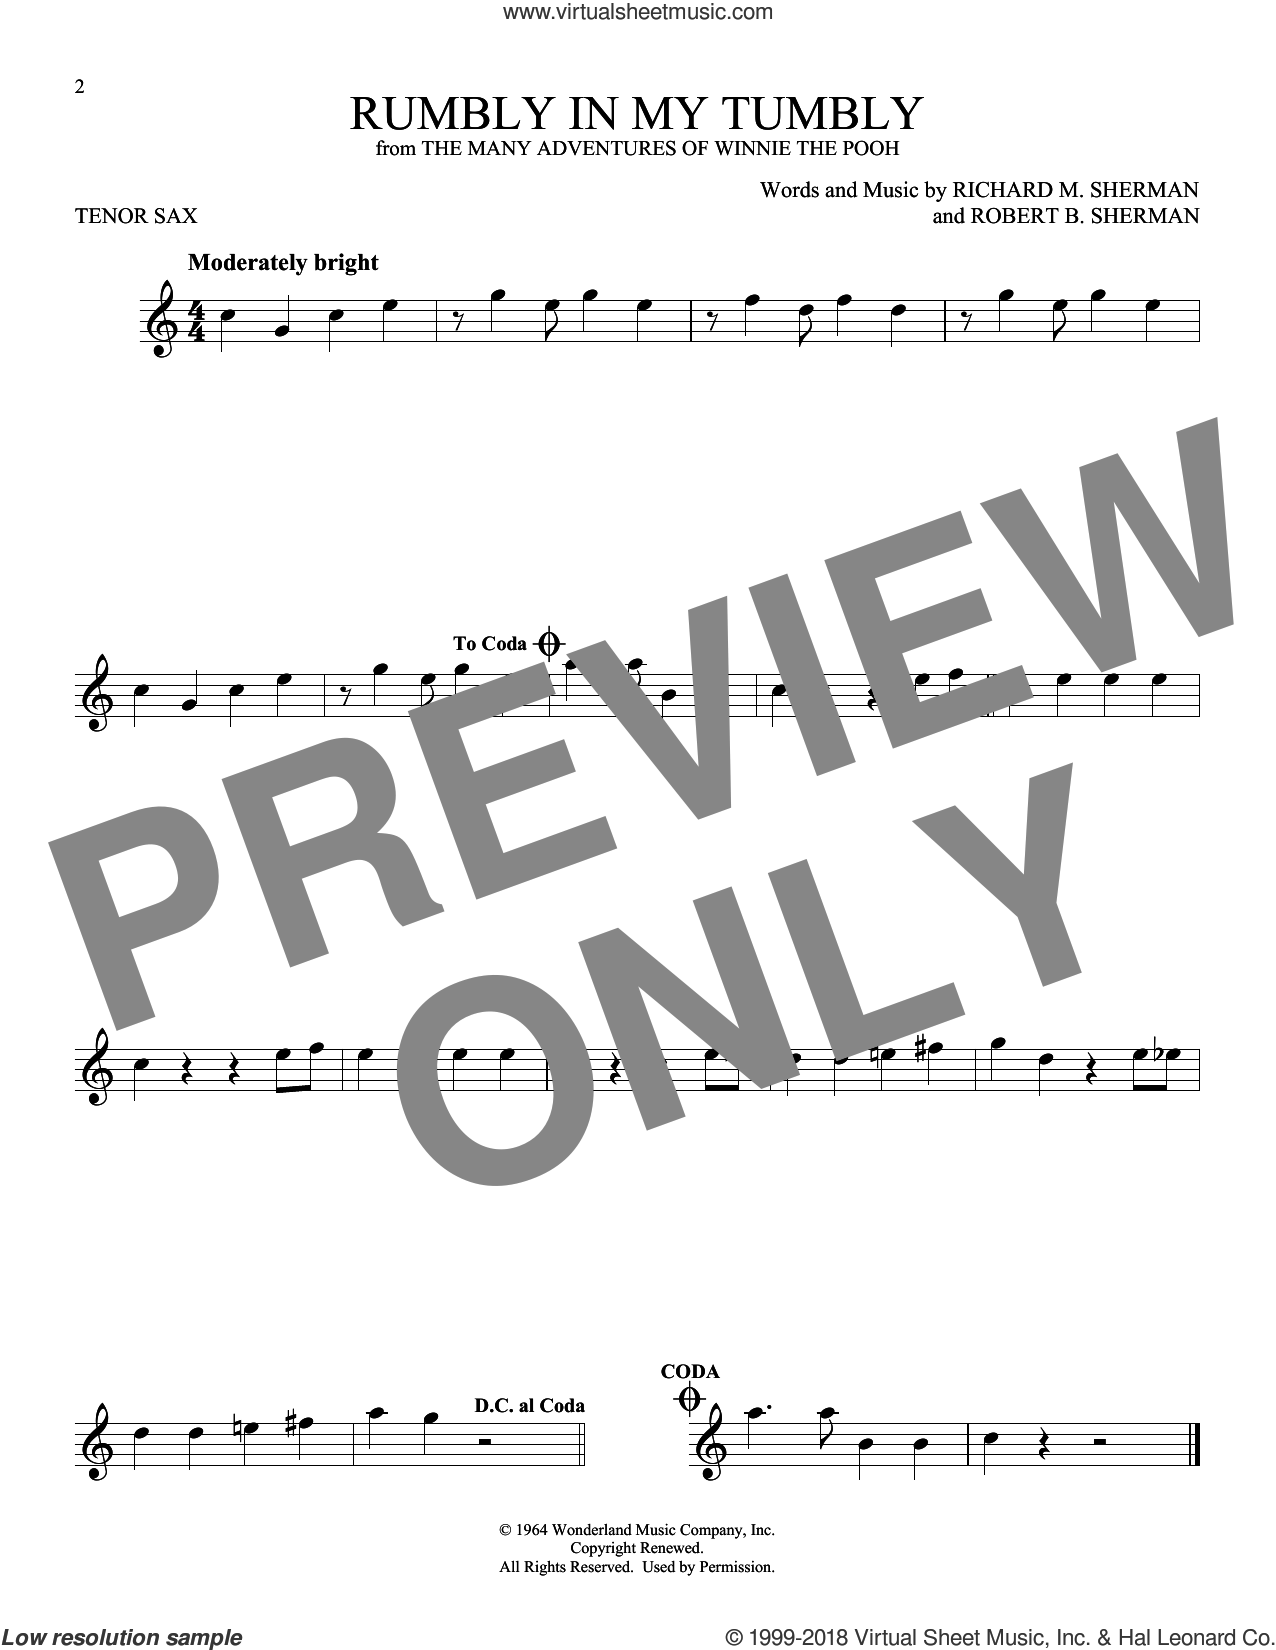 Rumbly In My Tumbly sheet music for tenor saxophone solo by Richard M. Sherman and Robert B. Sherman, intermediate skill level